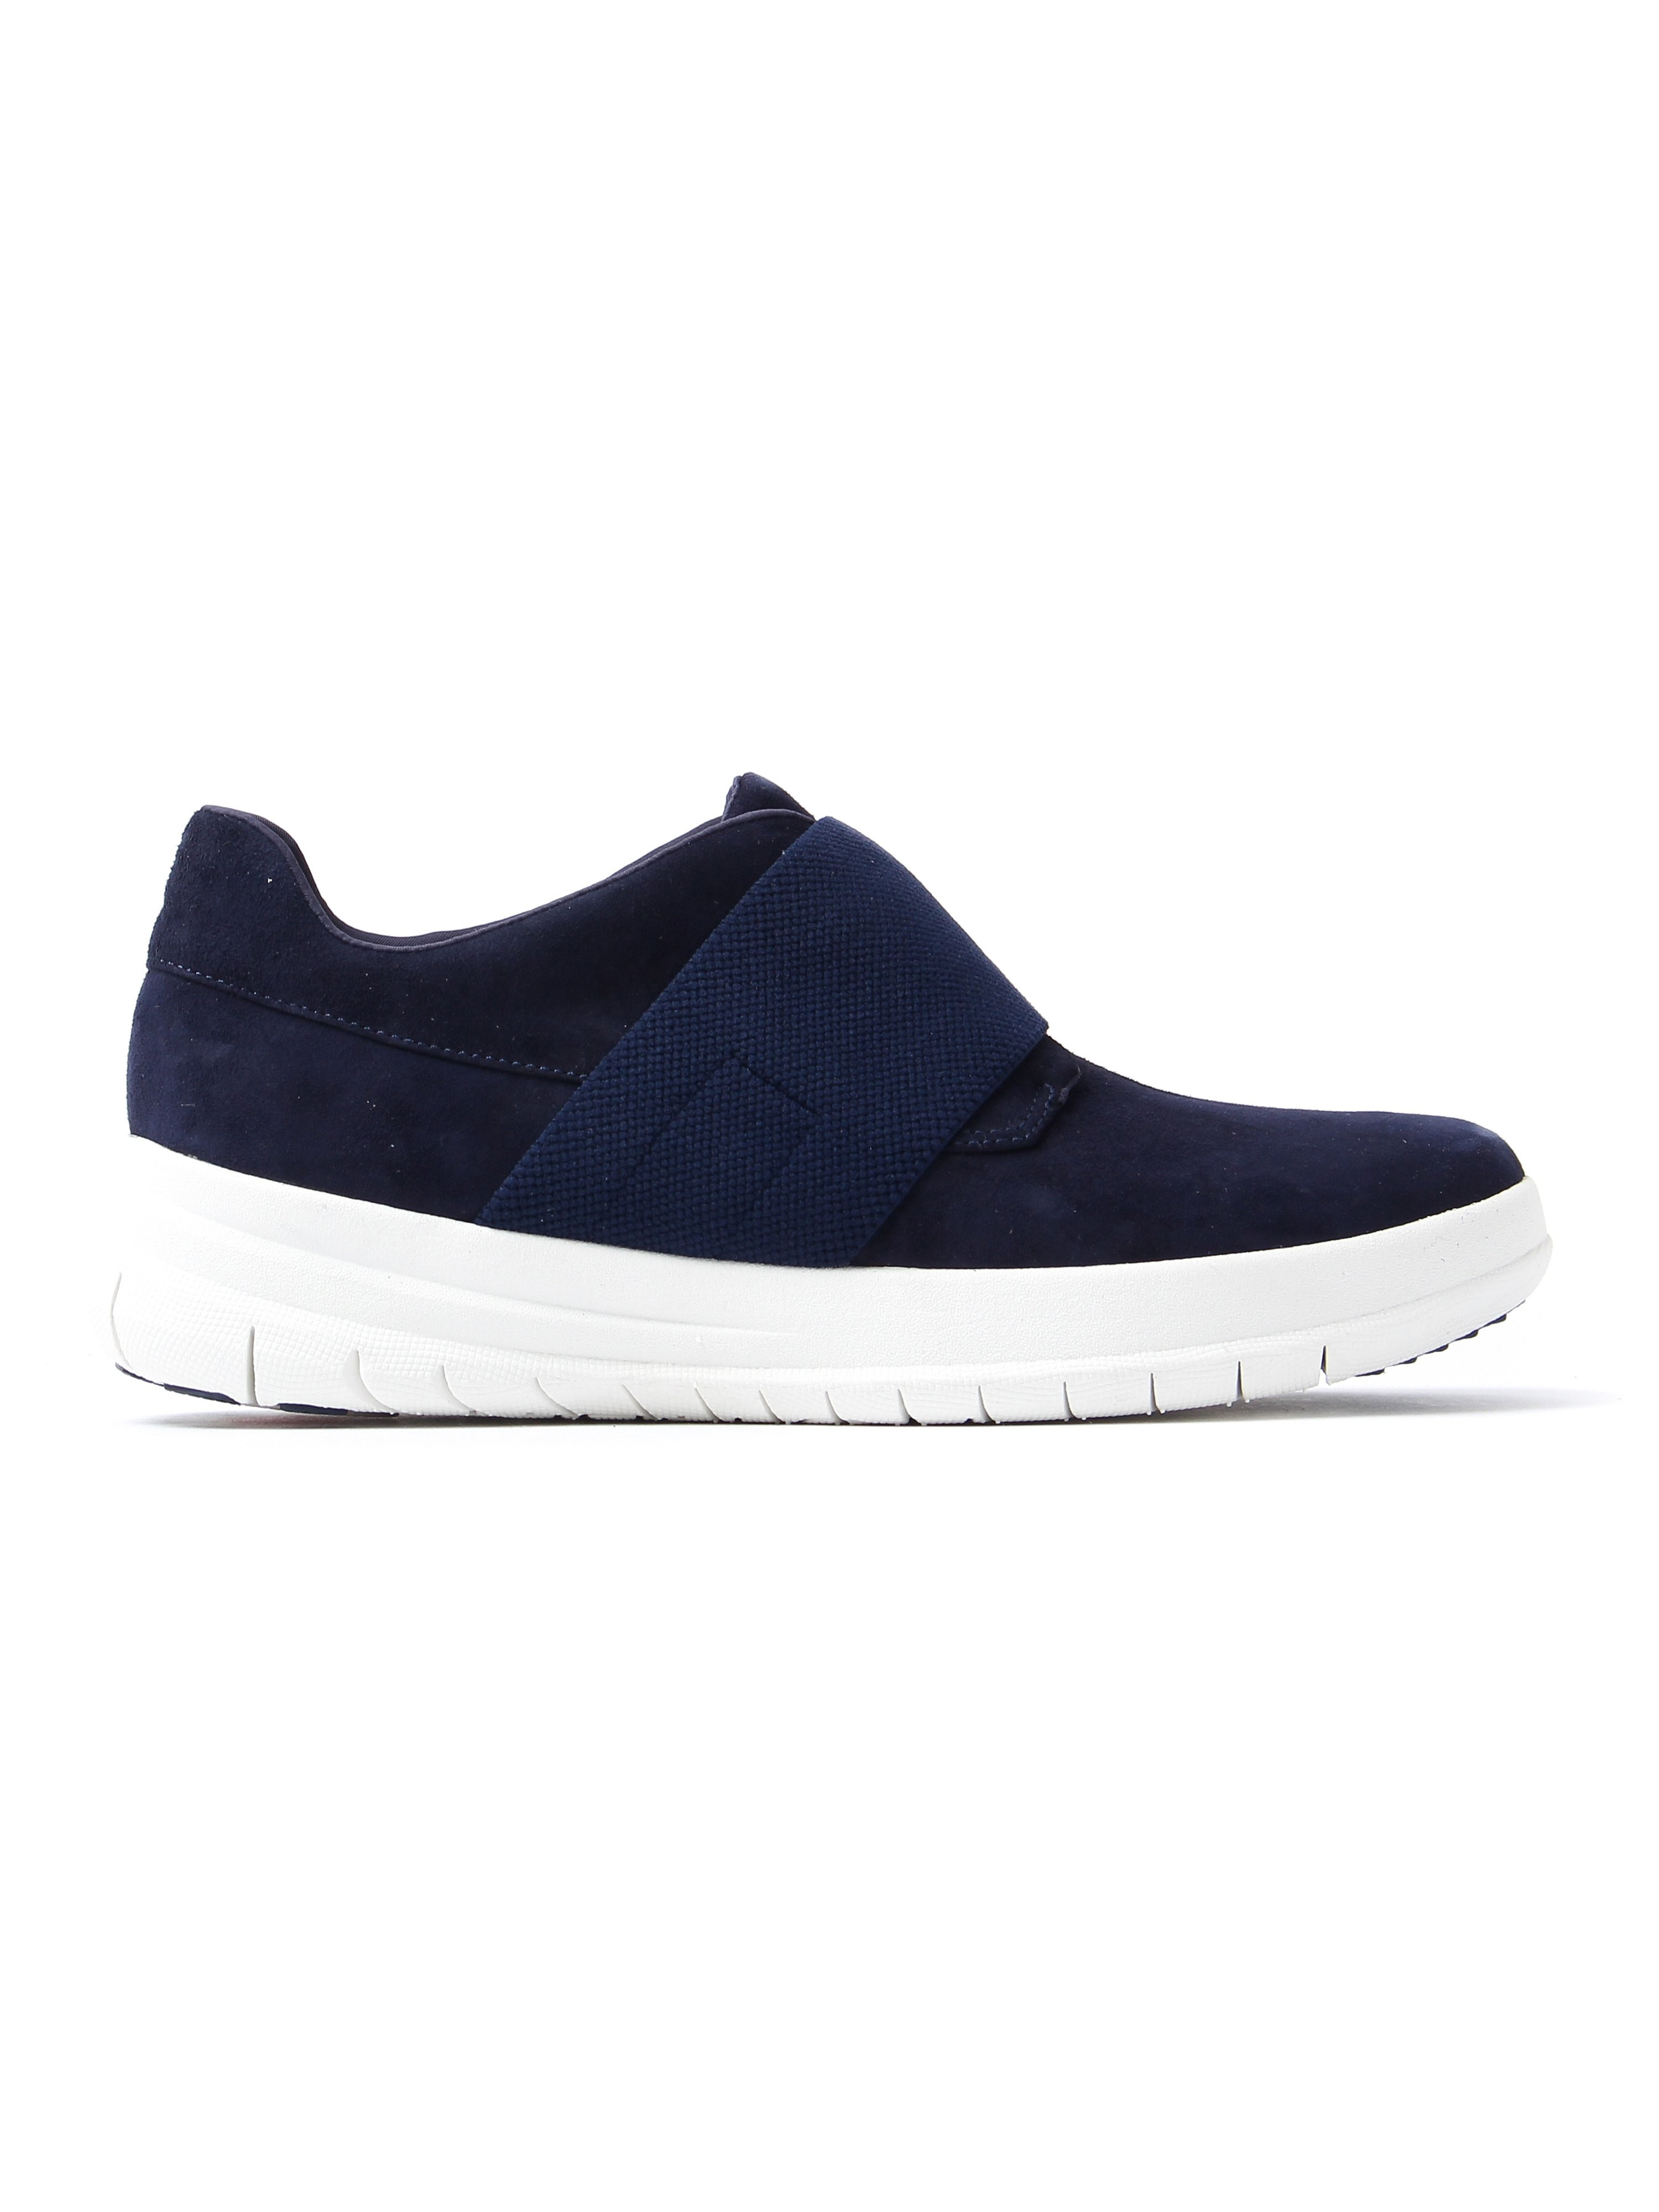 FitFlop Women's Sporty-Pop Slip-On Trainers - Midnight Navy Suede